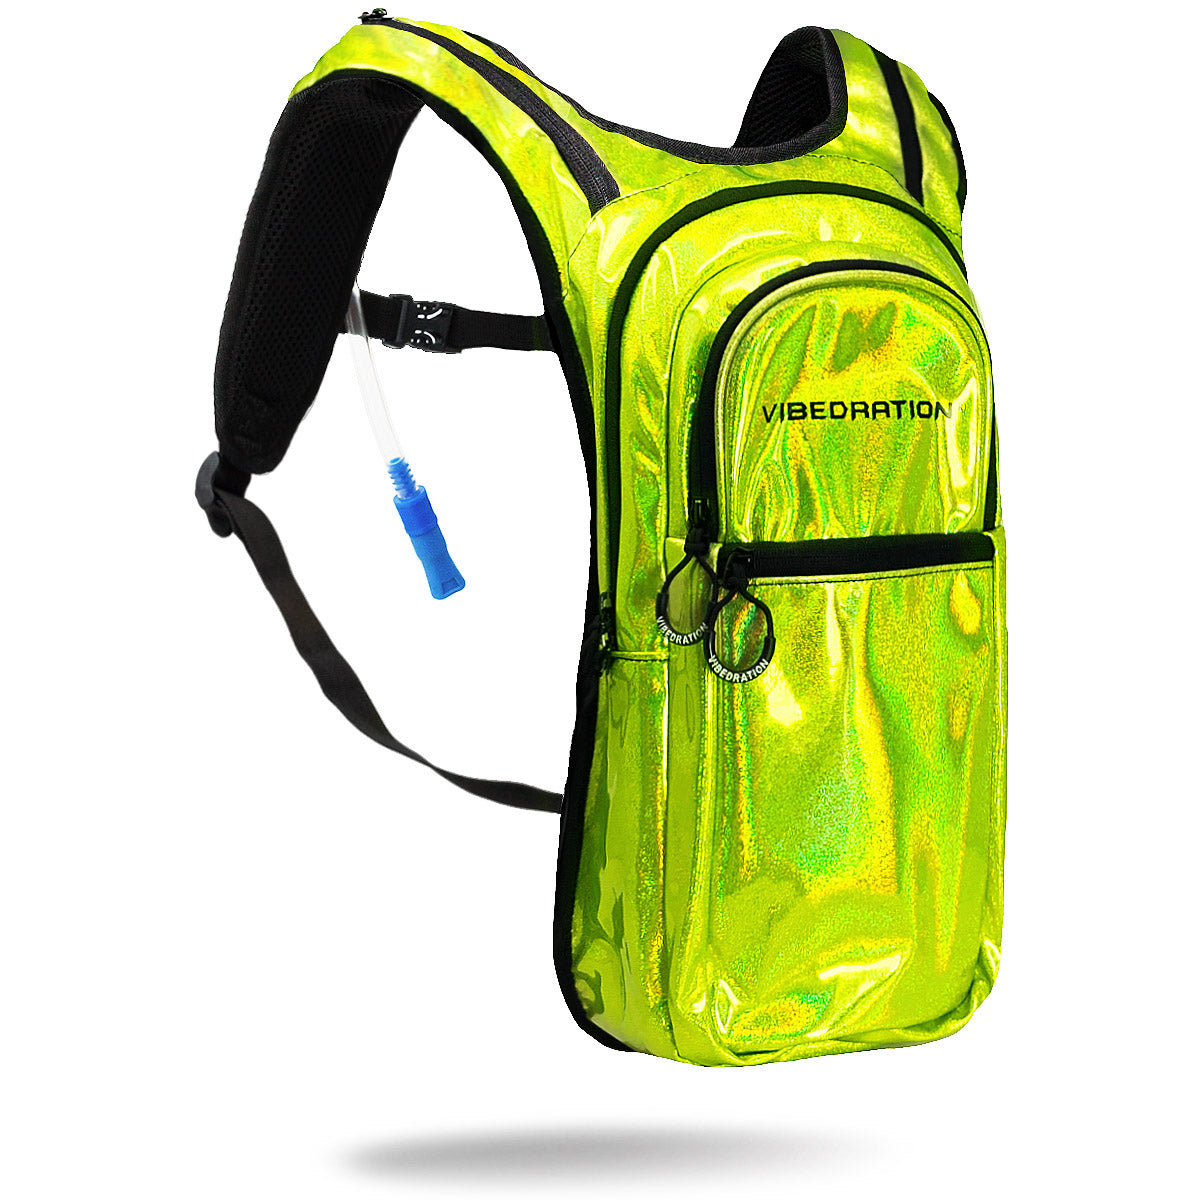 Neon Luxe VIP 2.0L EDC Festival Hydration Pack Product Shot